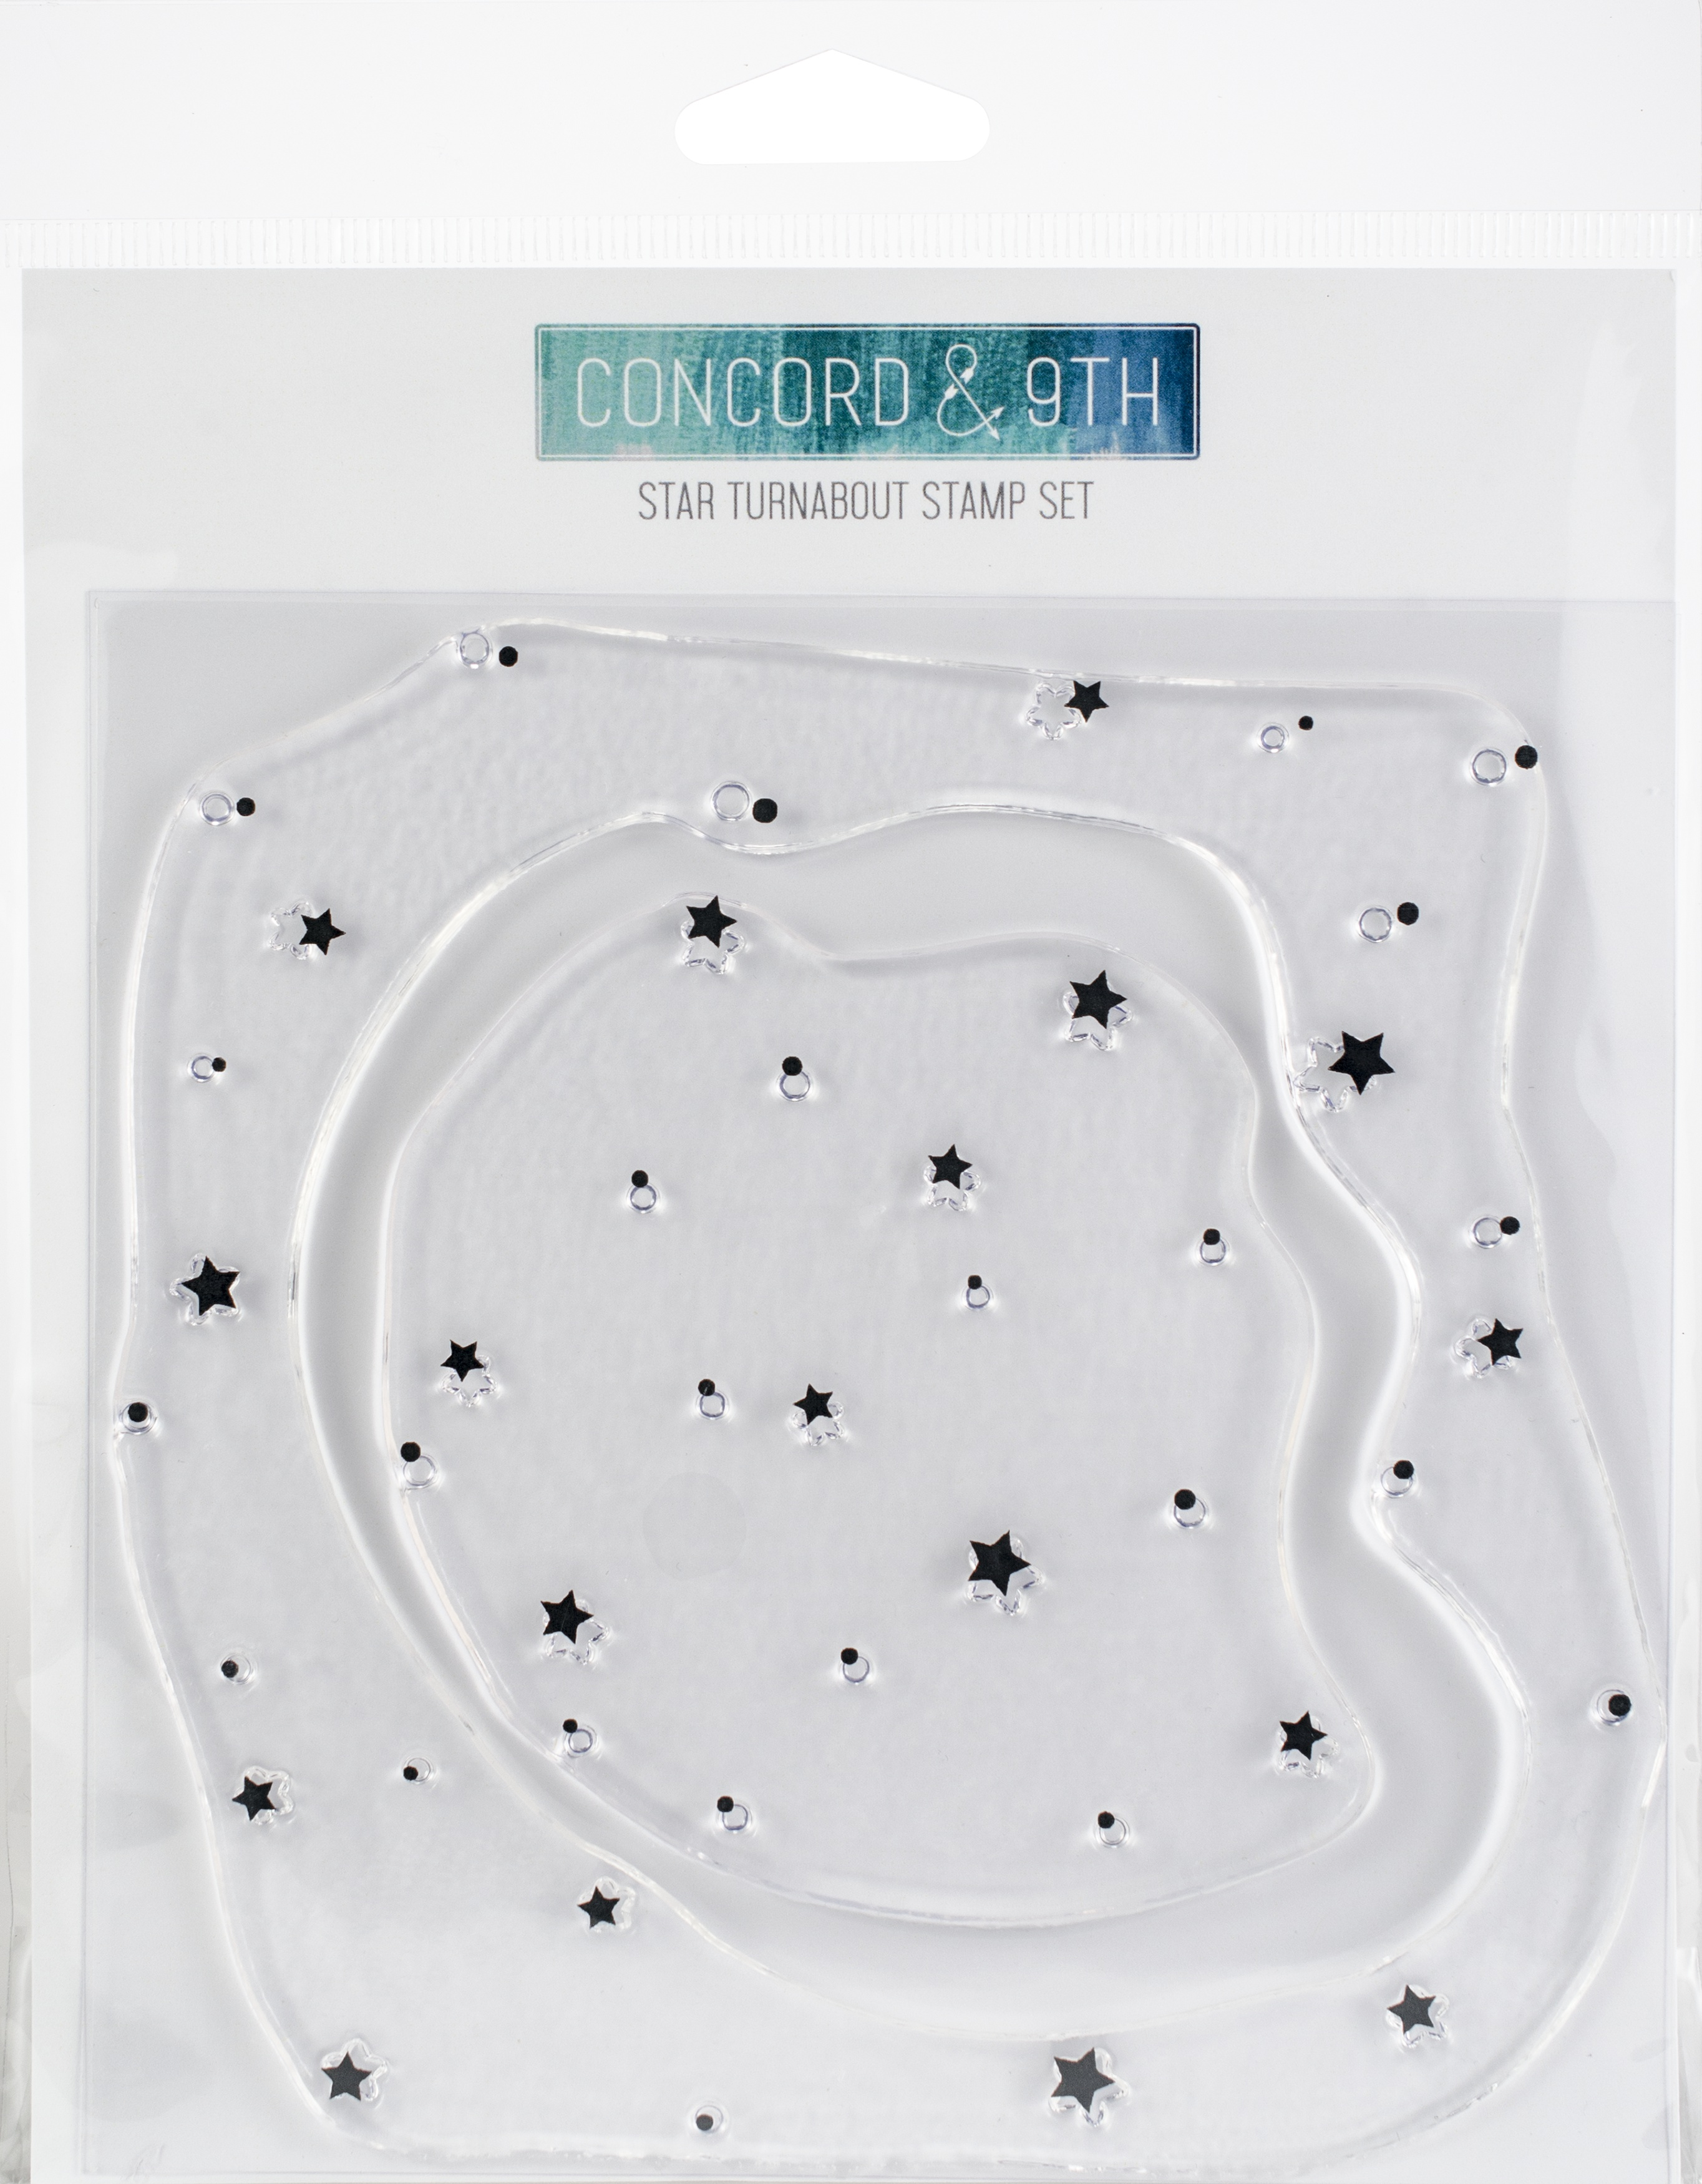 Concord & 9th Star turnabout stamp set